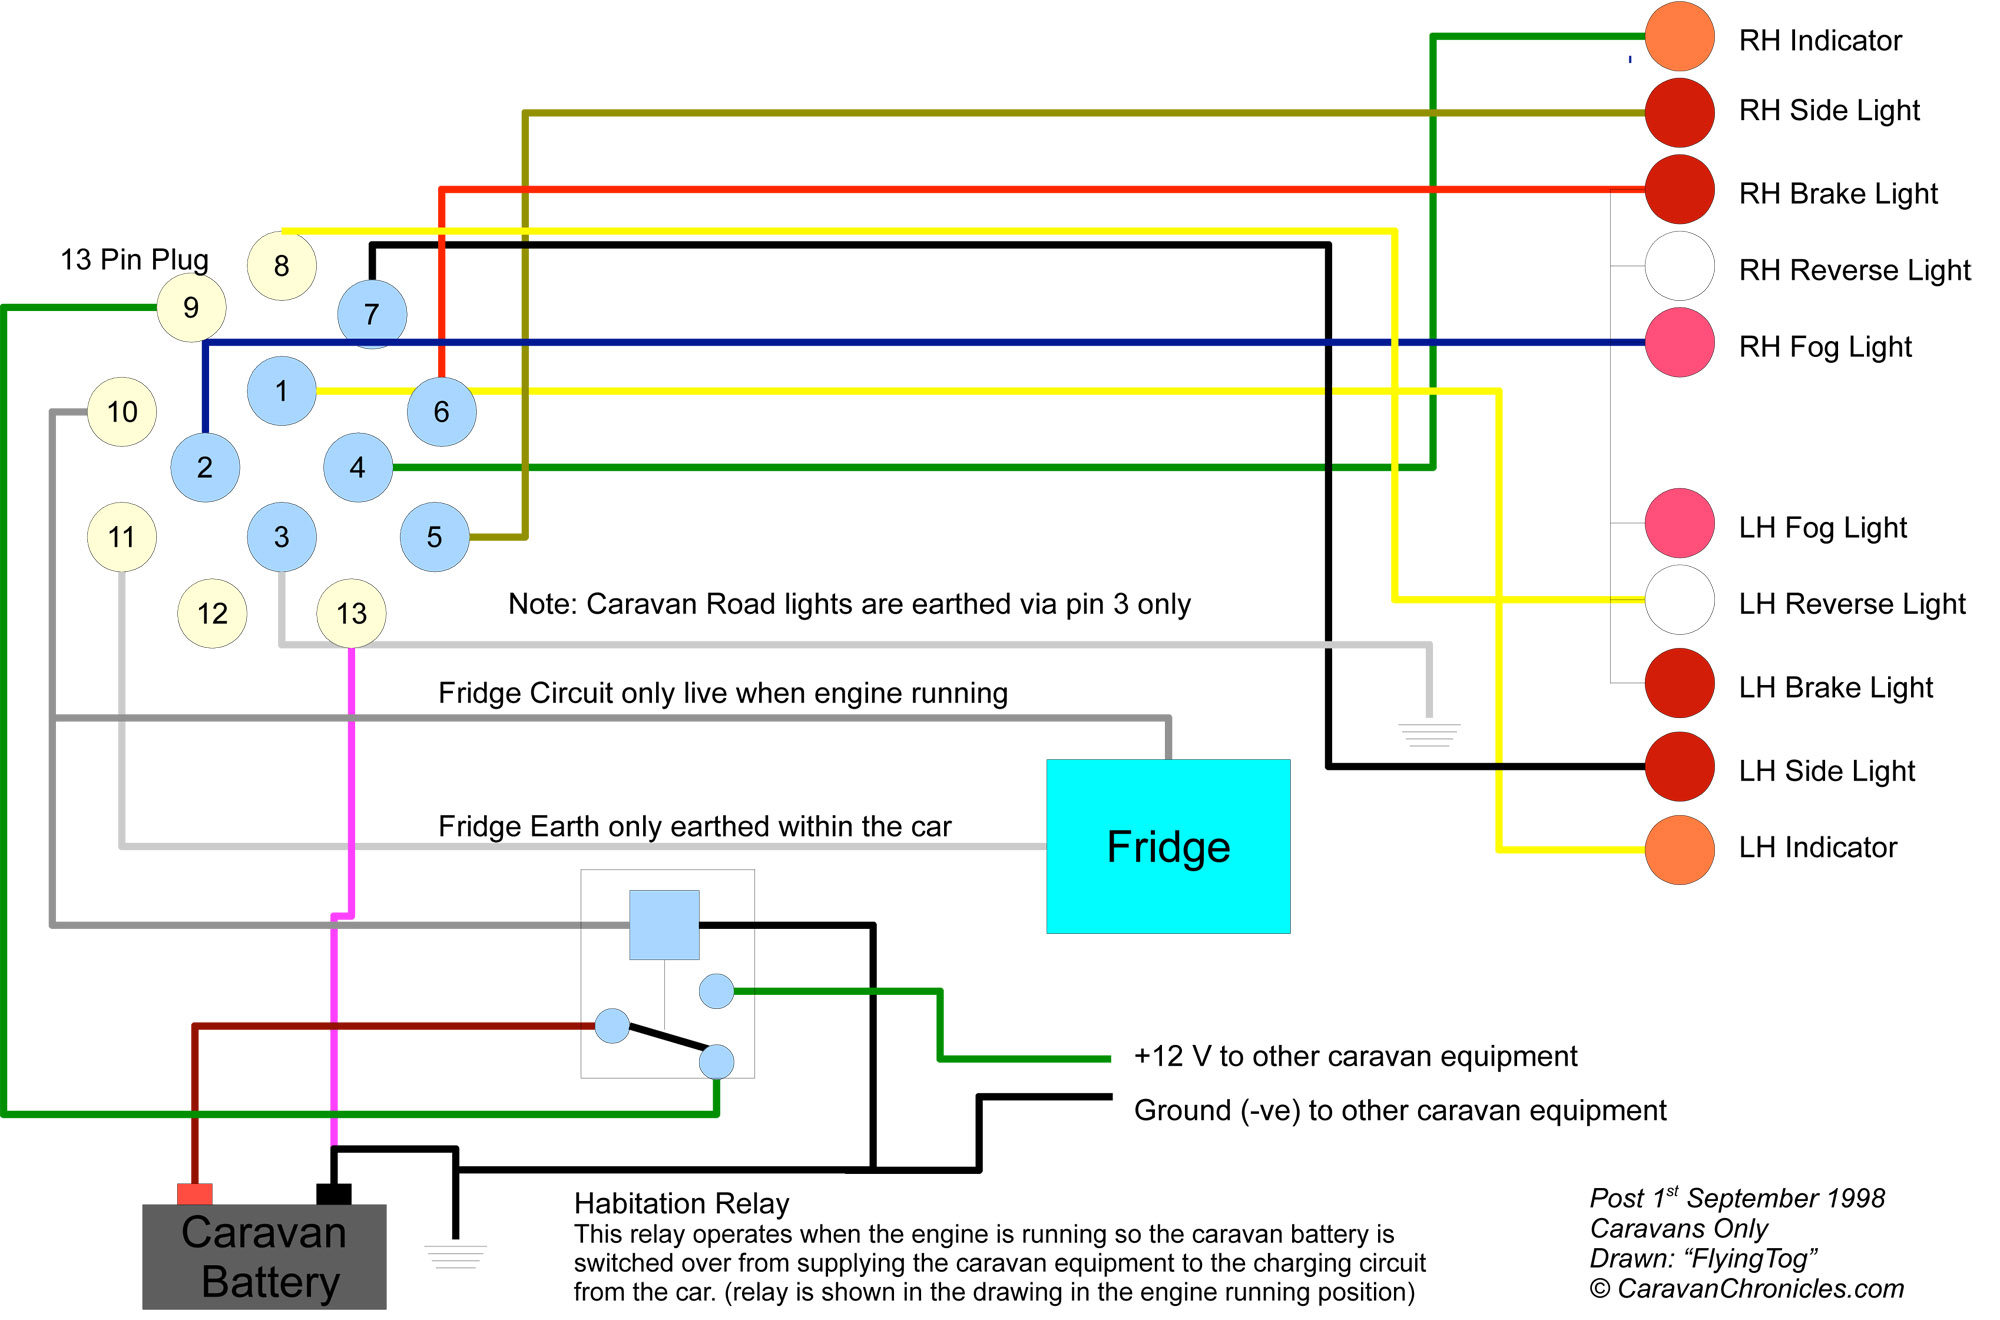 Understanding Caravan And Tow Car Electrics Chronicles Garden Light Wiring Free Download Diagram Schematic Typical 13 Pin Connected